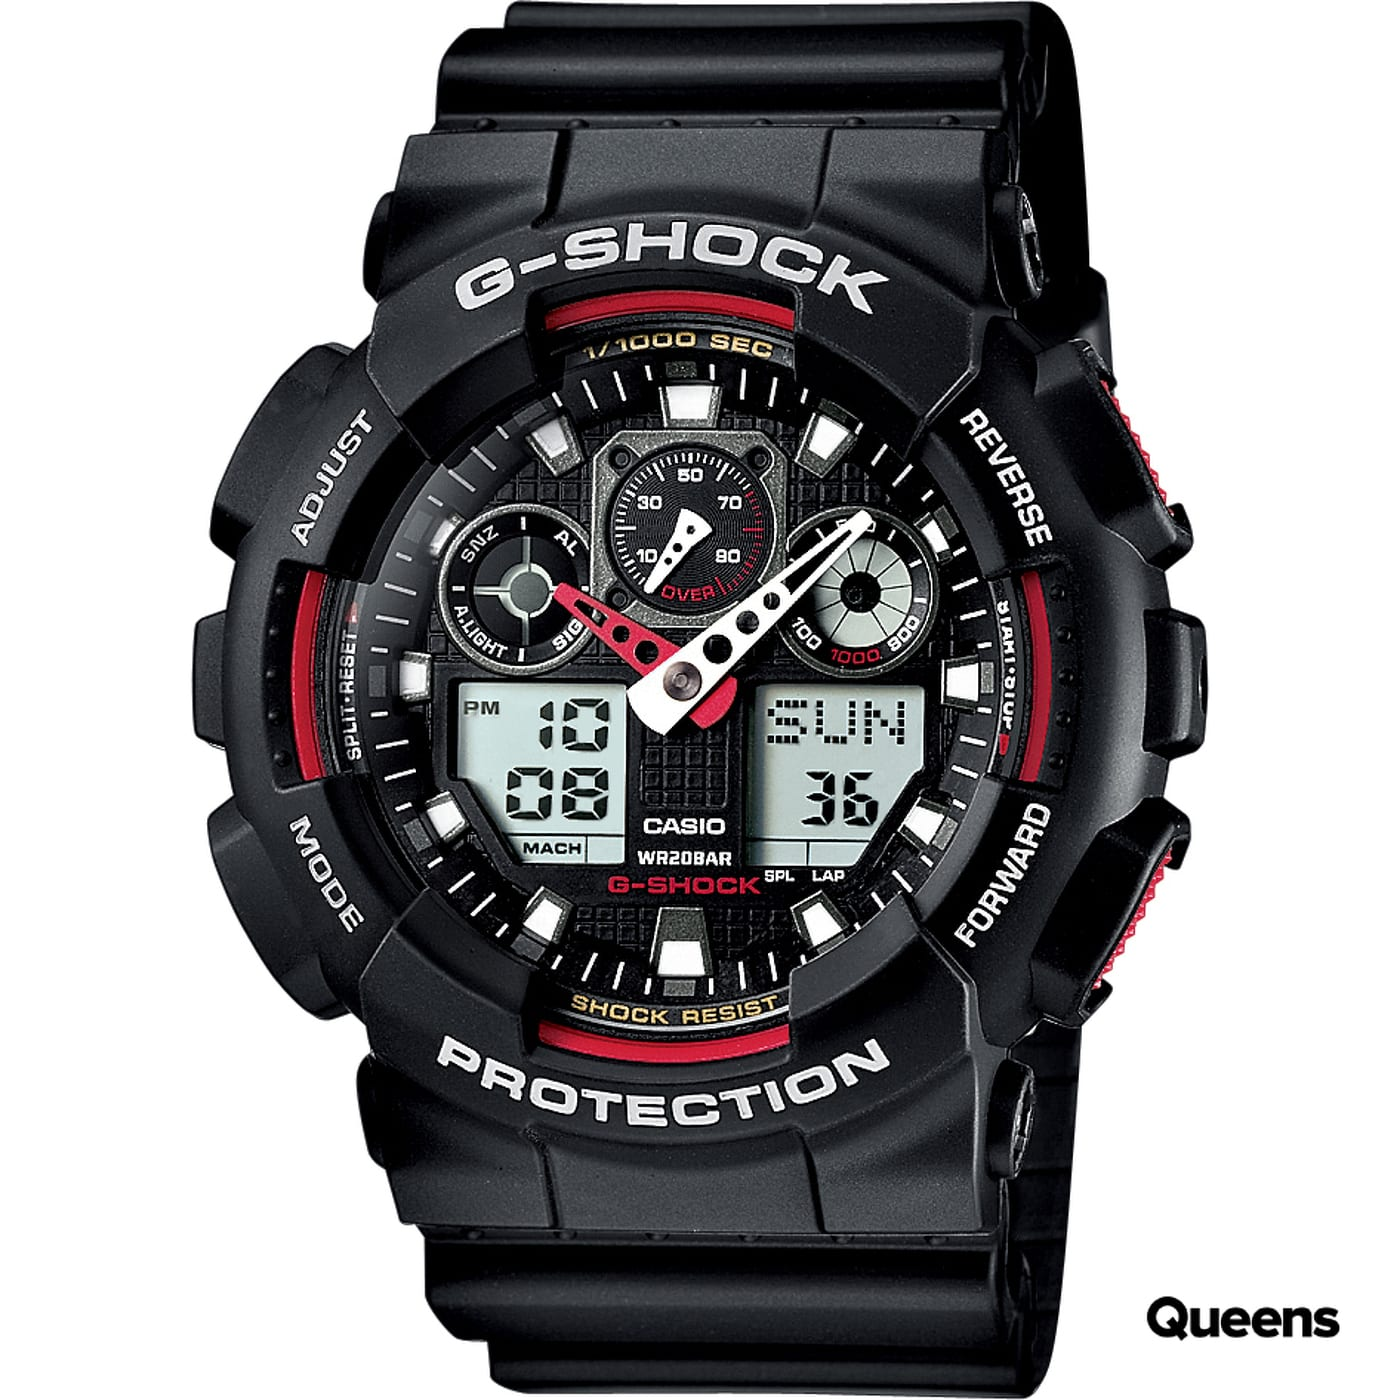 Casio G-Shock GA 100-1A4ER black